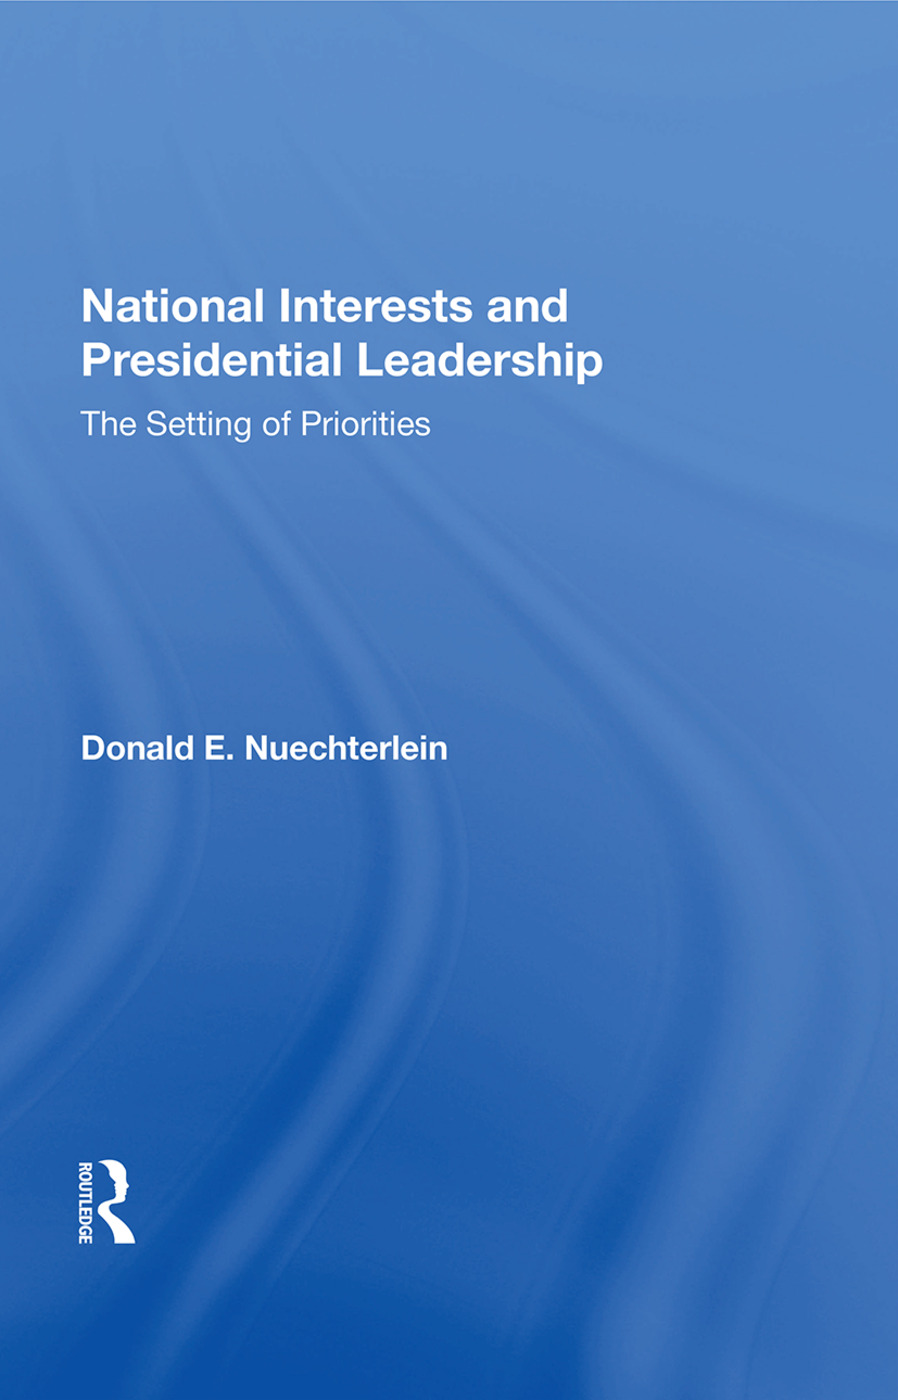 National Interests and Presidential Leadership